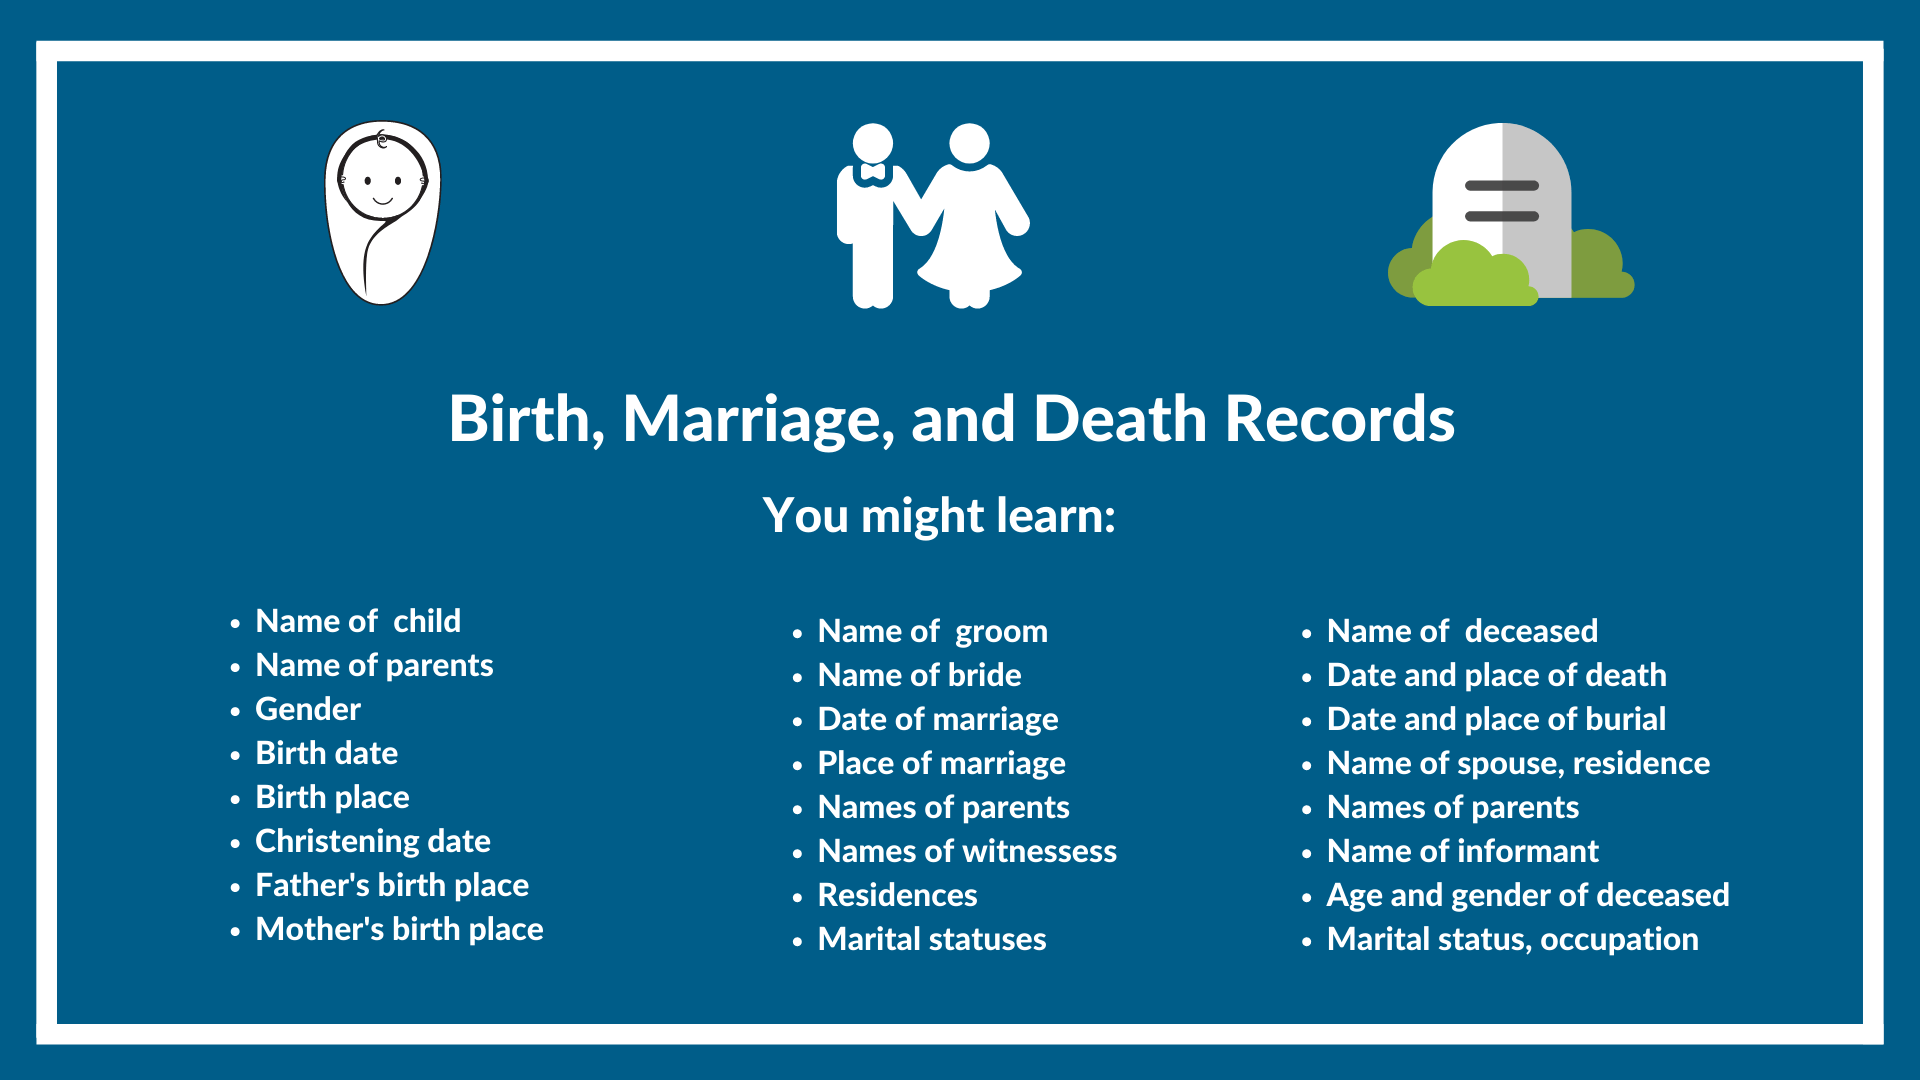 Birth Marriage and Death records and what you might learn from them